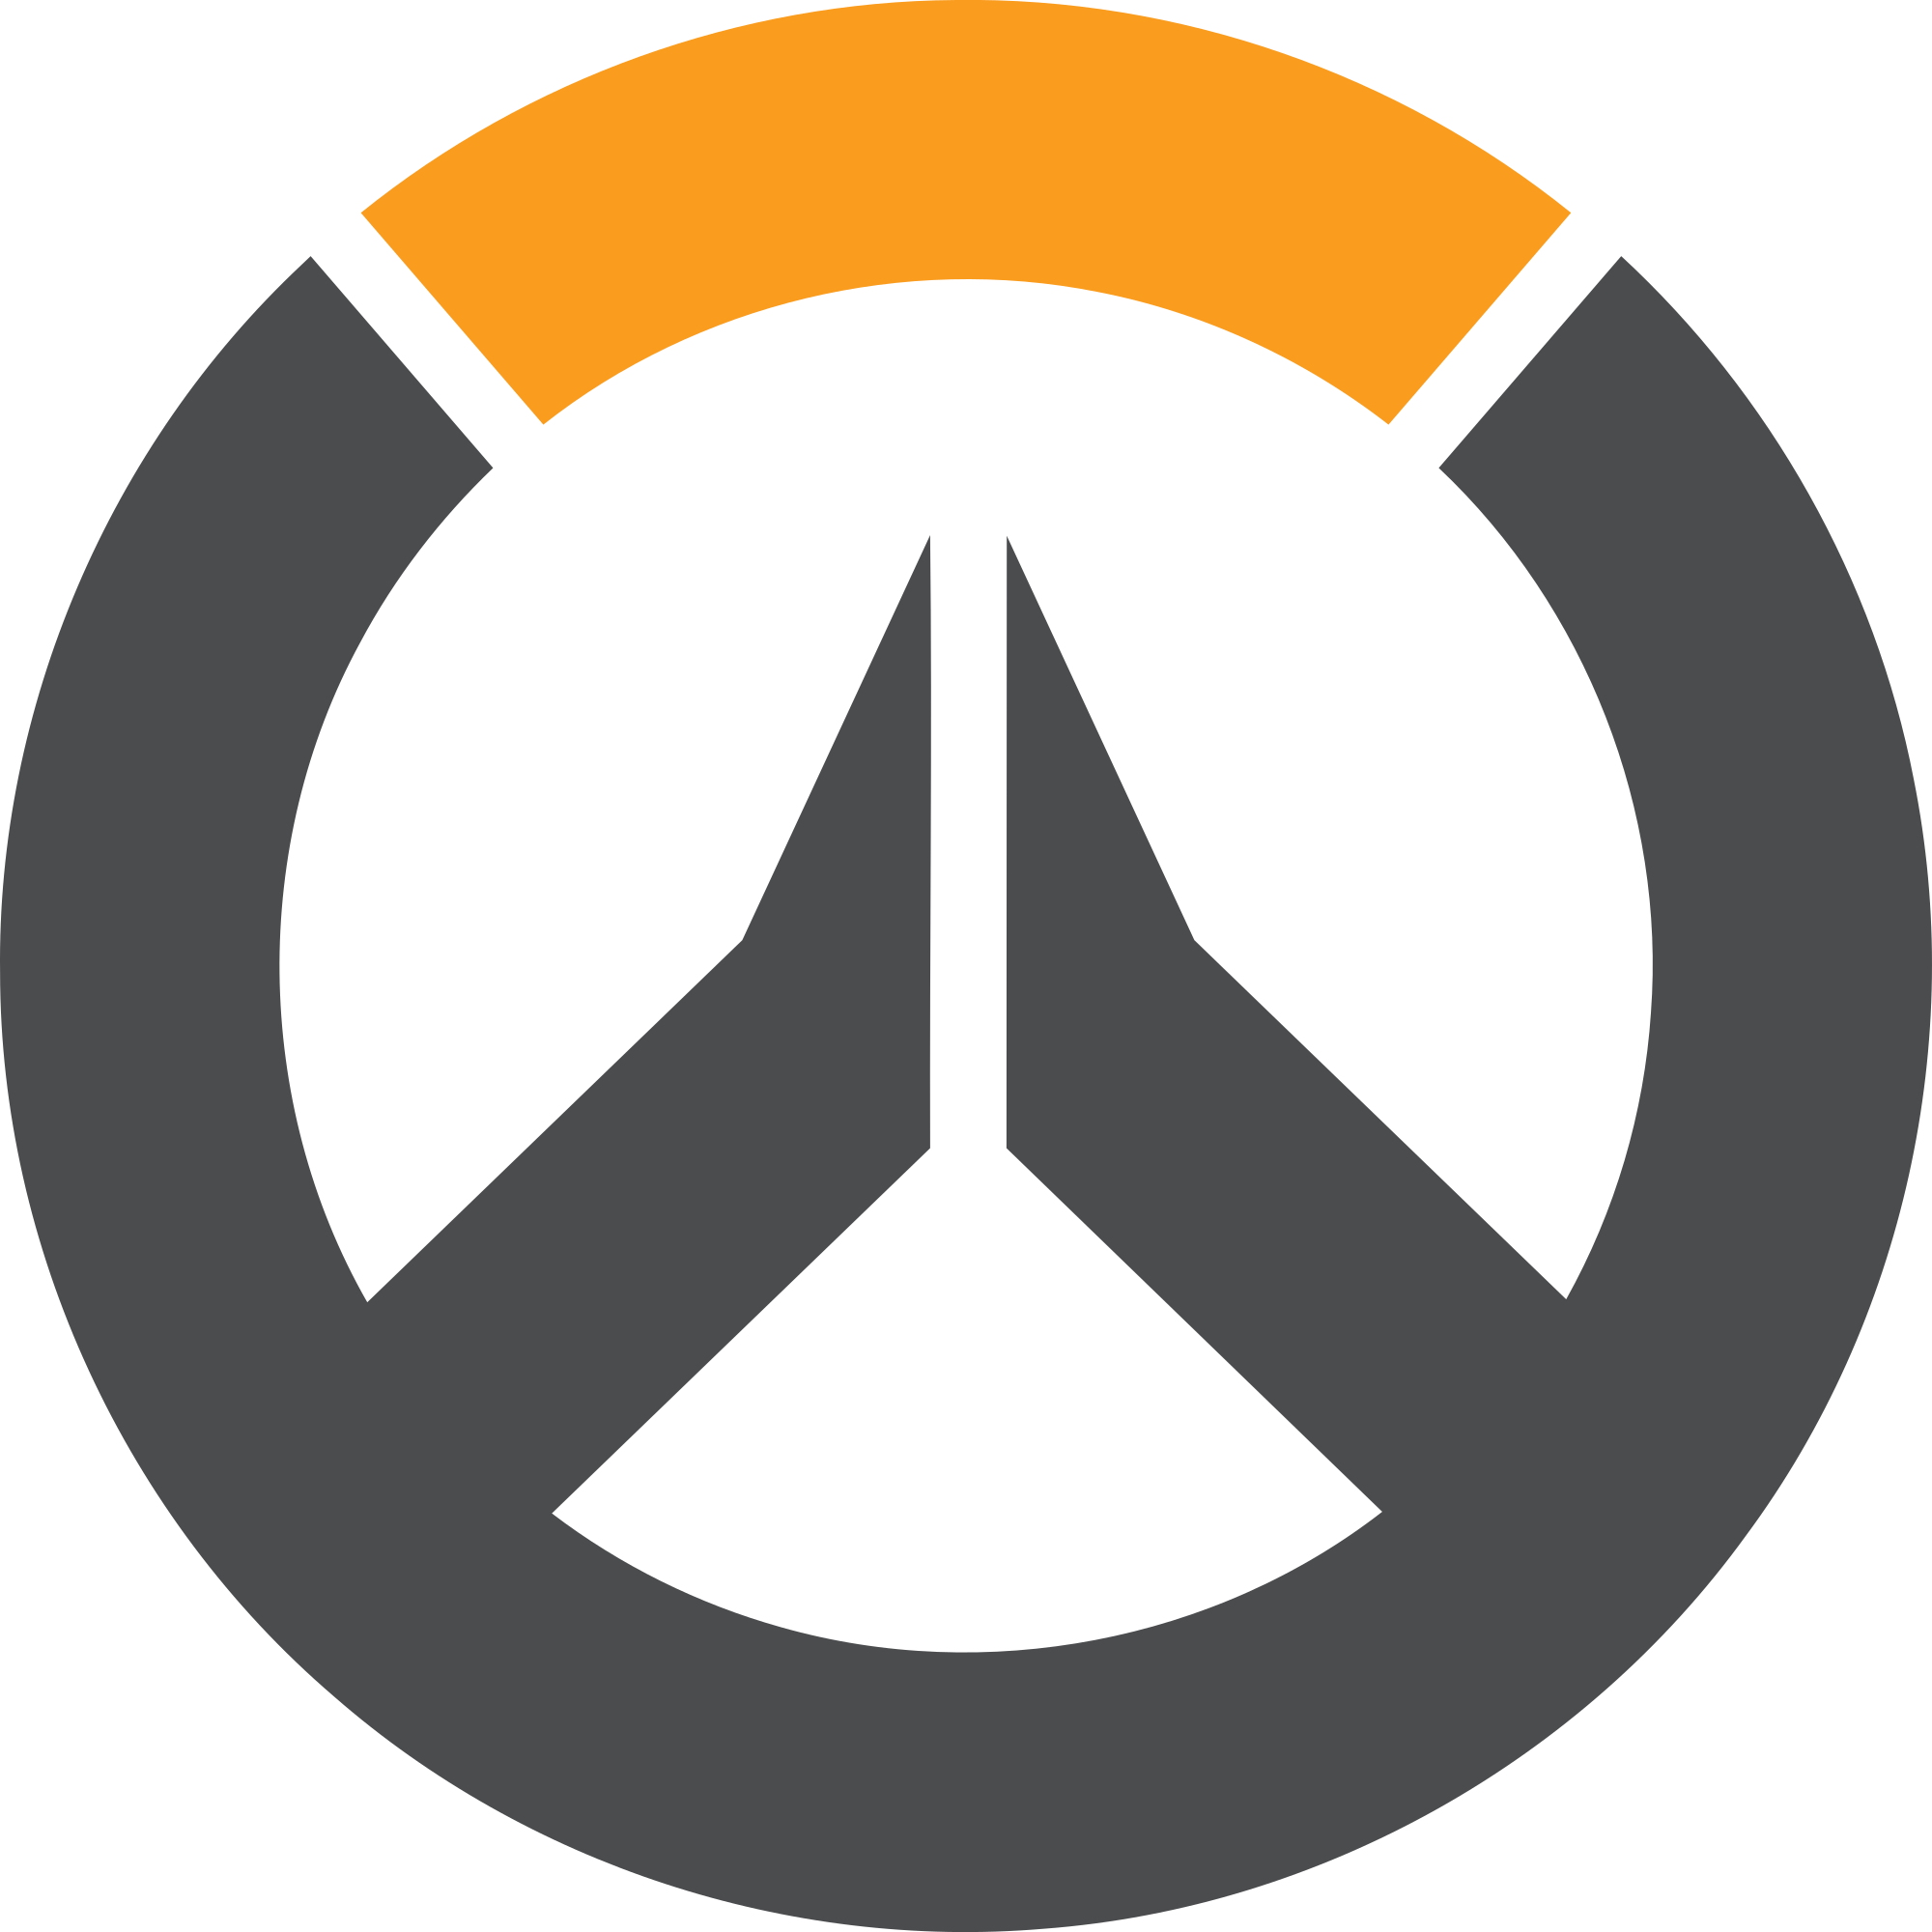 File circle logo svg. Overwatch symbol png